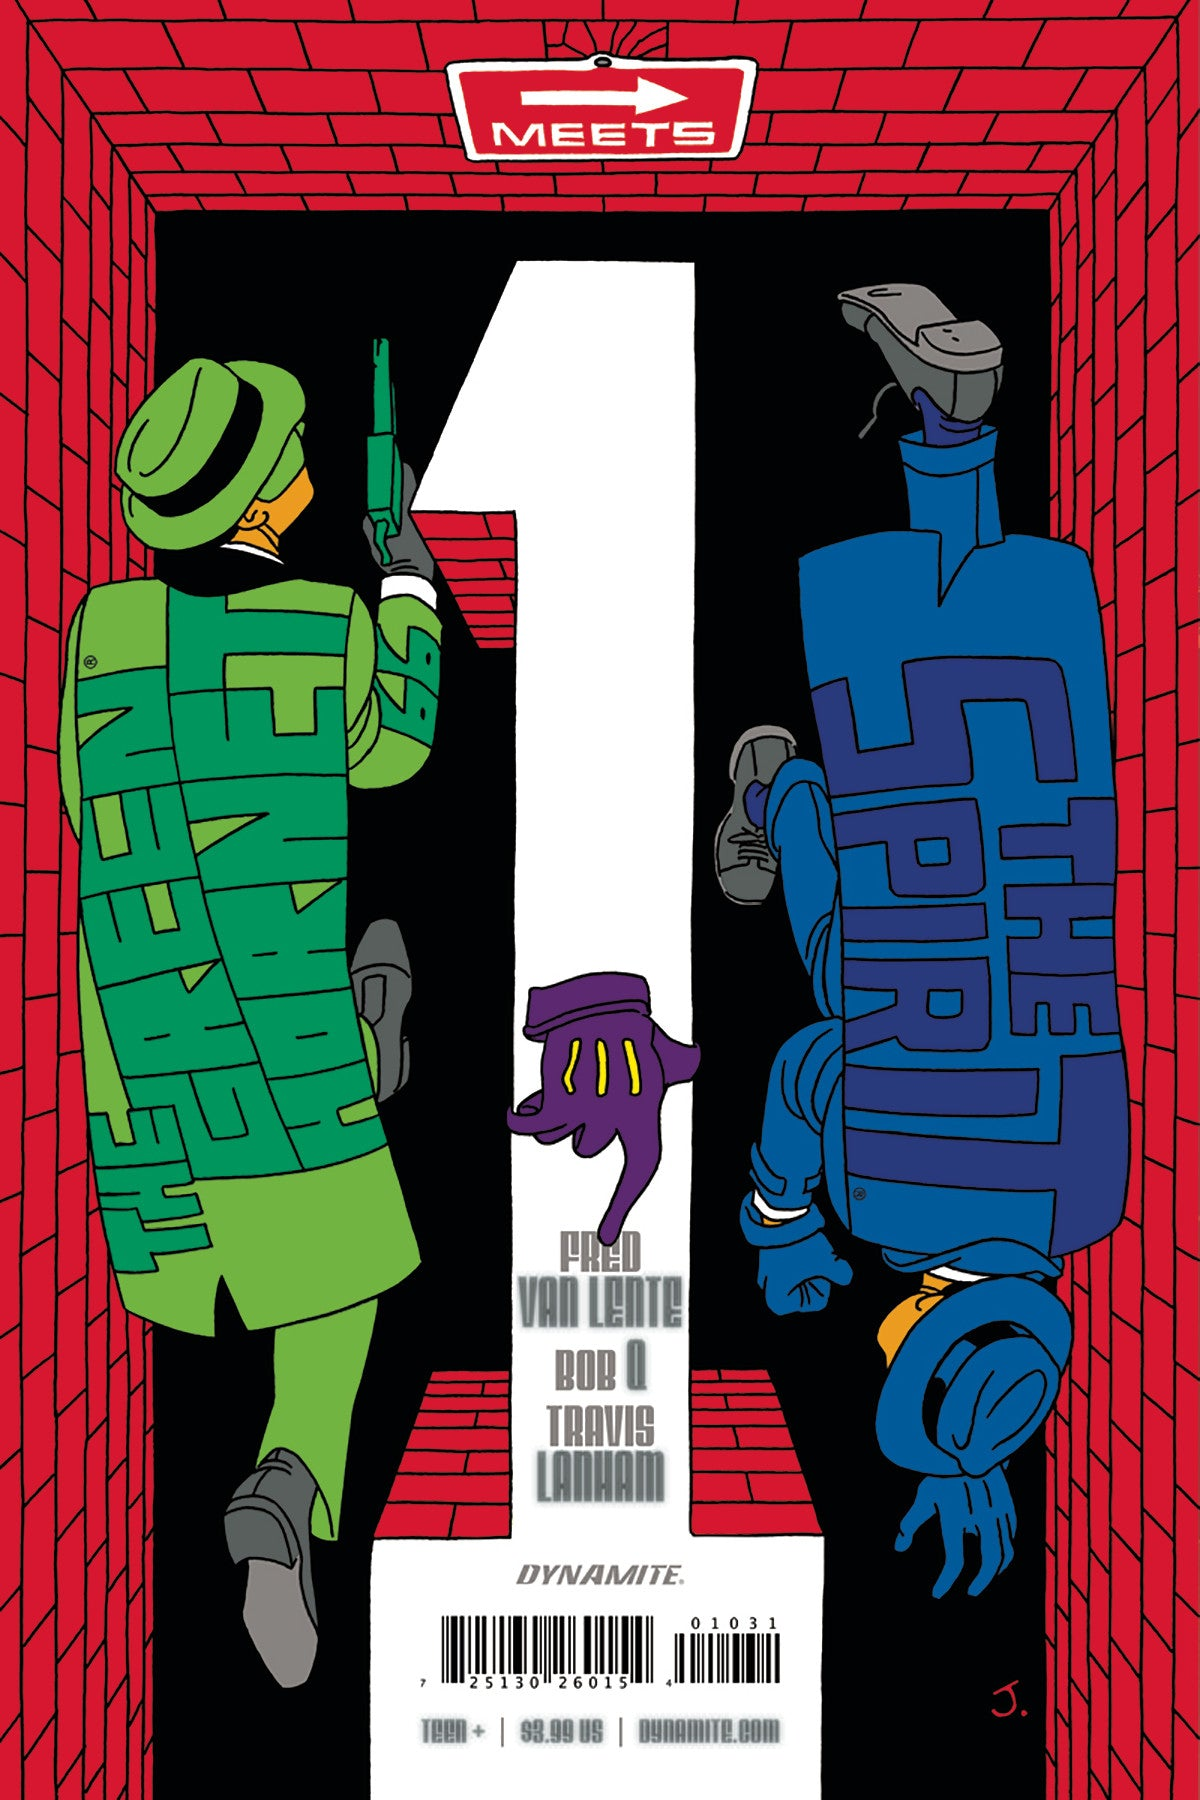 GREEN HORNET 66 MEETS SPIRIT #1